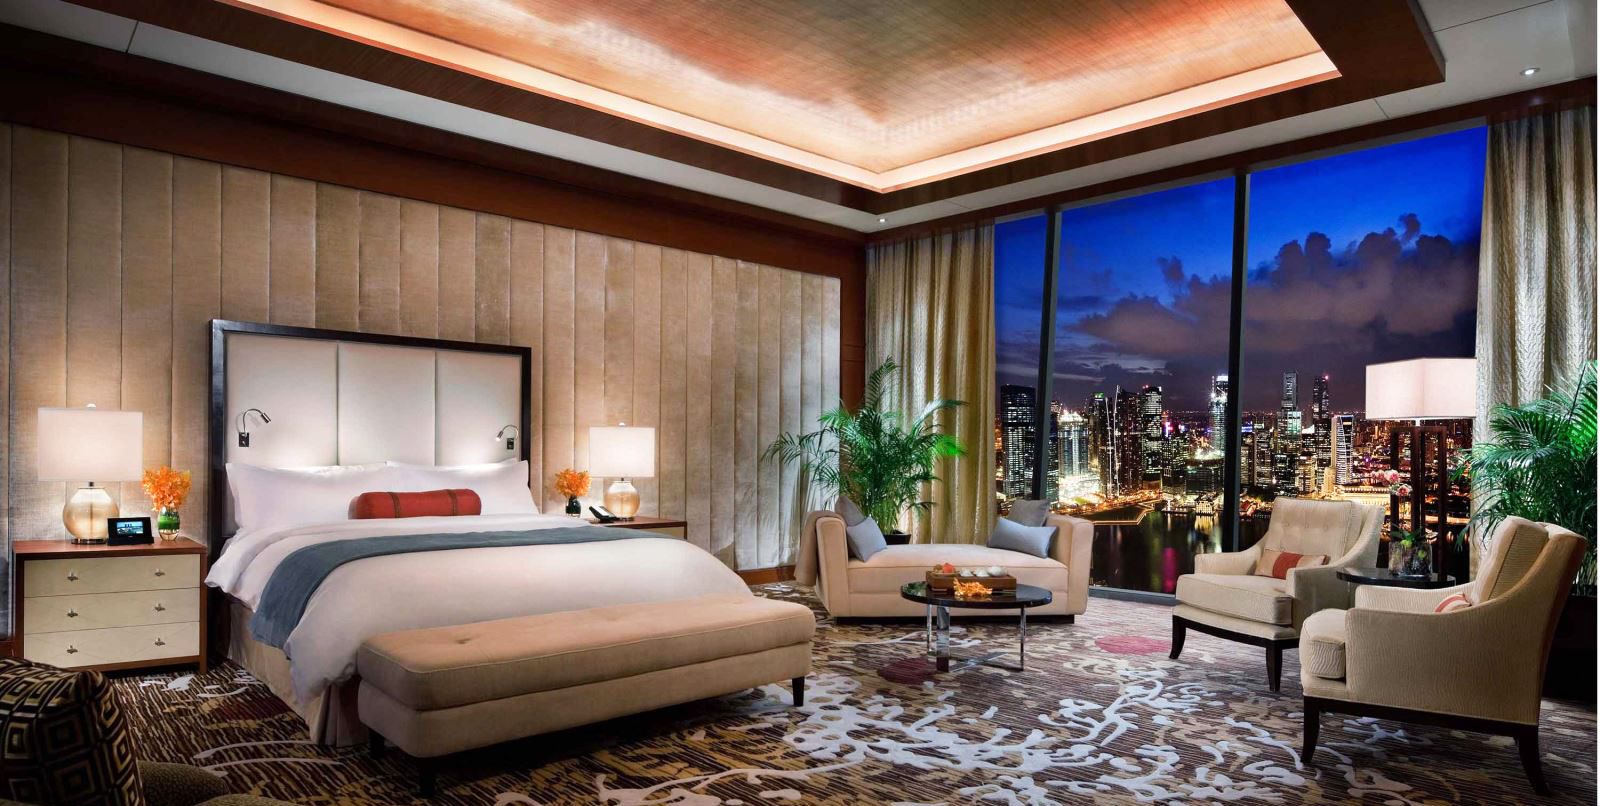 bedroom-ceiling-design-tray-ceiling-ideas-and-modern-panel-bed-design-also-floor-to-ceiling-window-and-luxurious